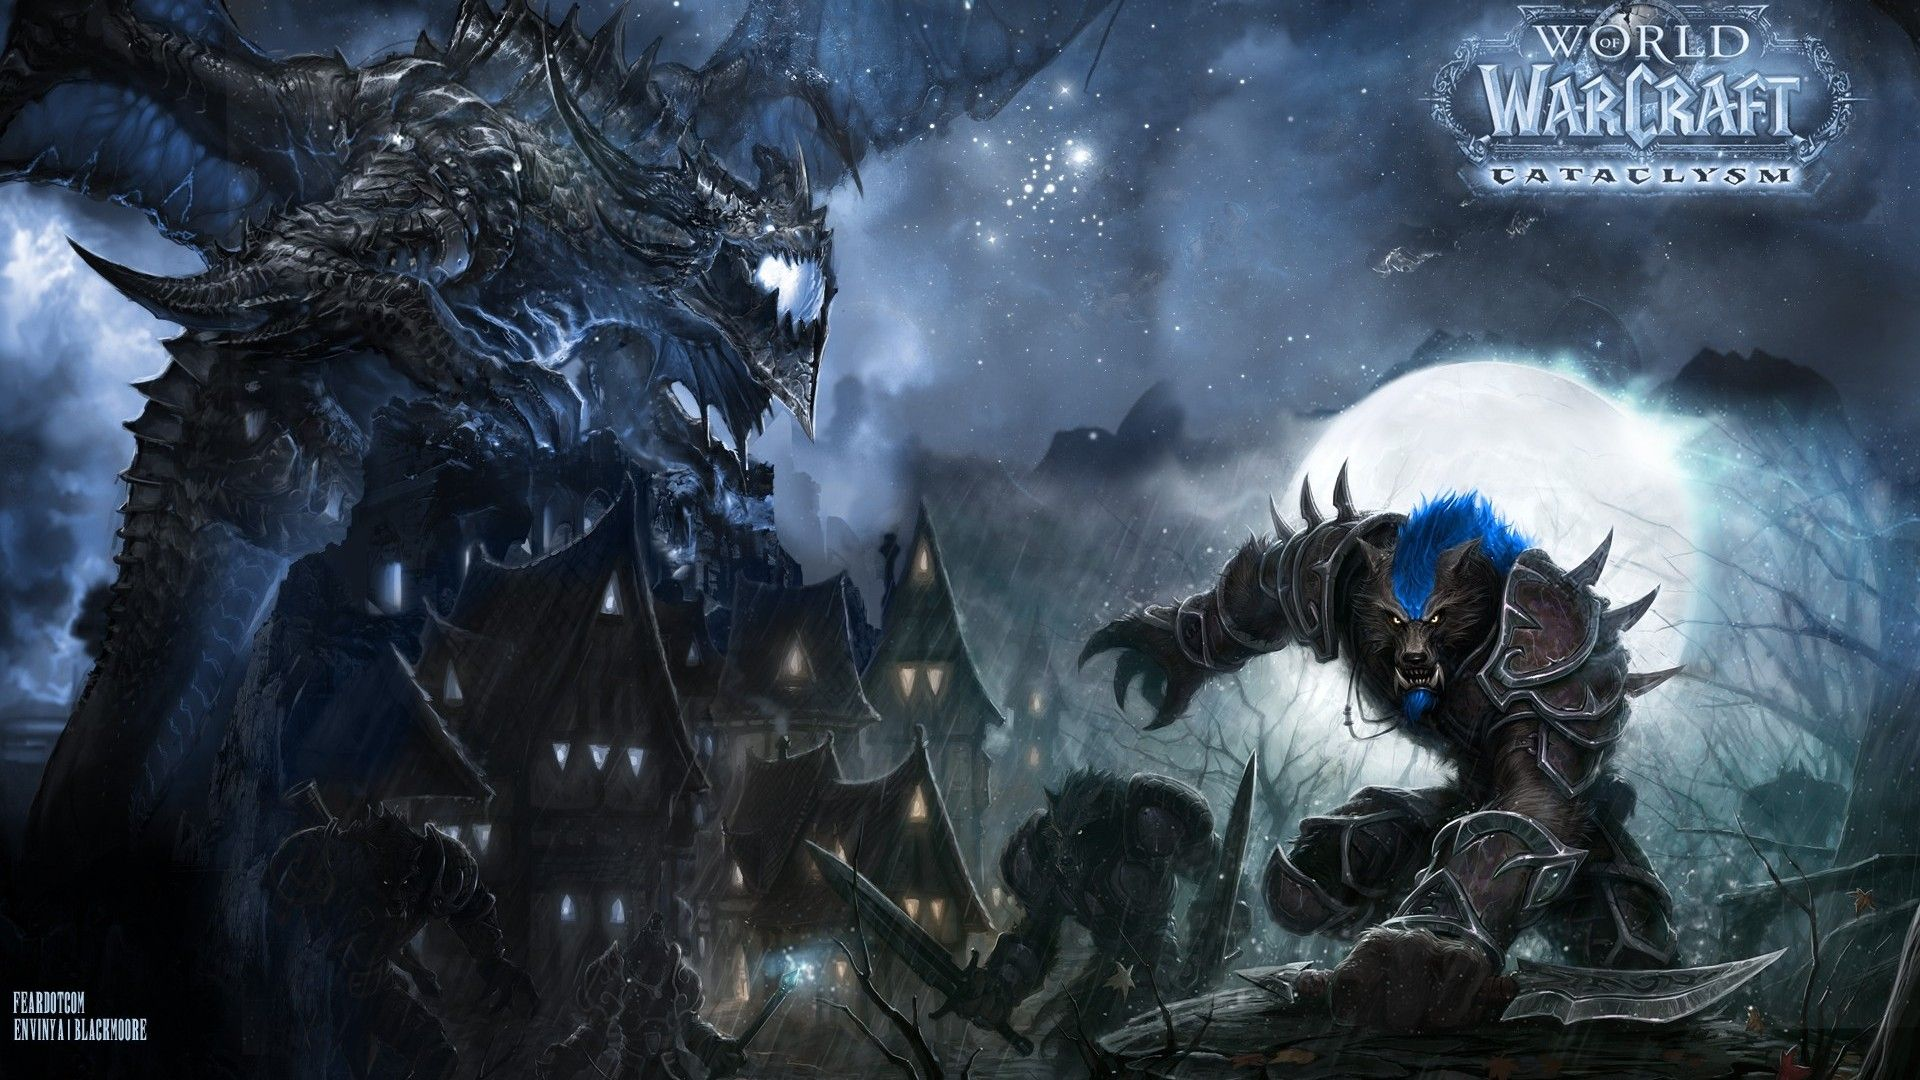 World Of Warcraft Game Exclusive Hd Wallpapers 2156 World Of Warcraft Wallpaper World Of Warcraft Cataclysm World Of Warcraft